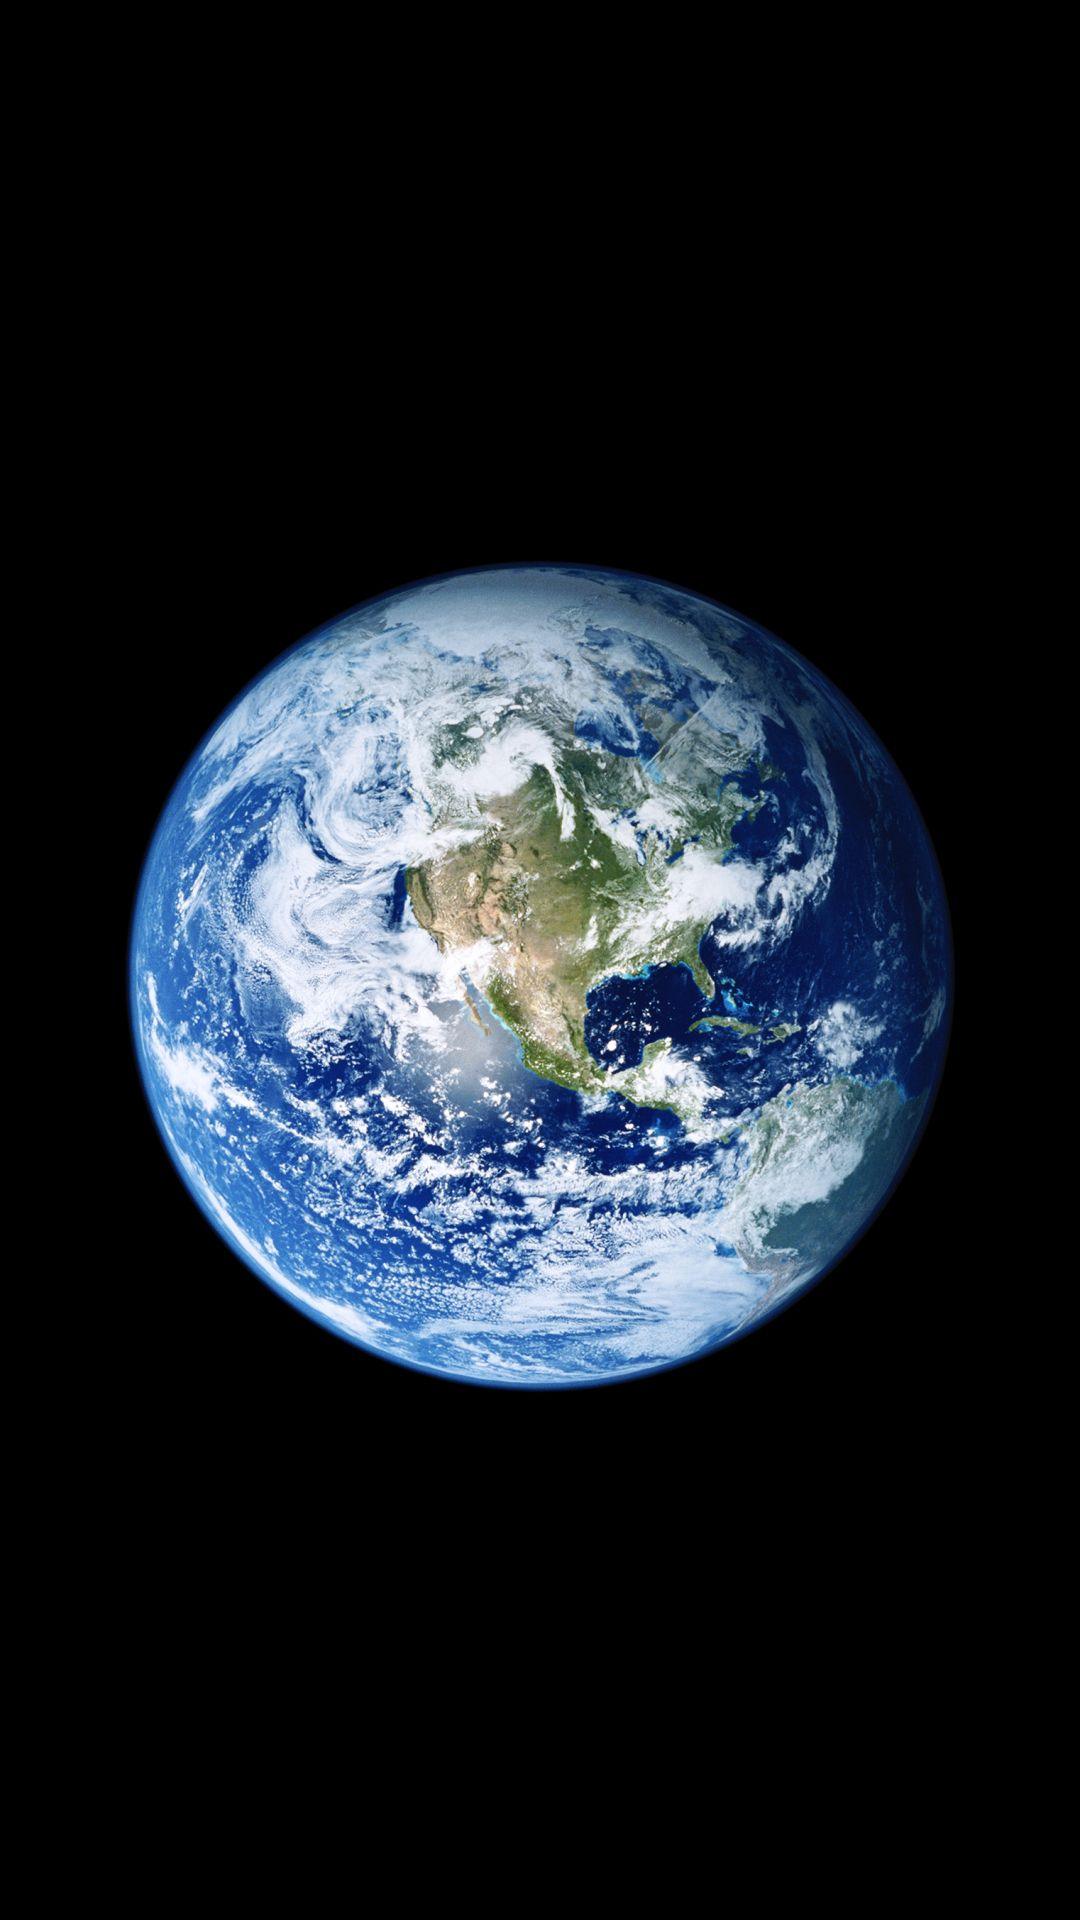 Earth Iphone Wallpaper In 2019 Iphone Wallpaper Earth